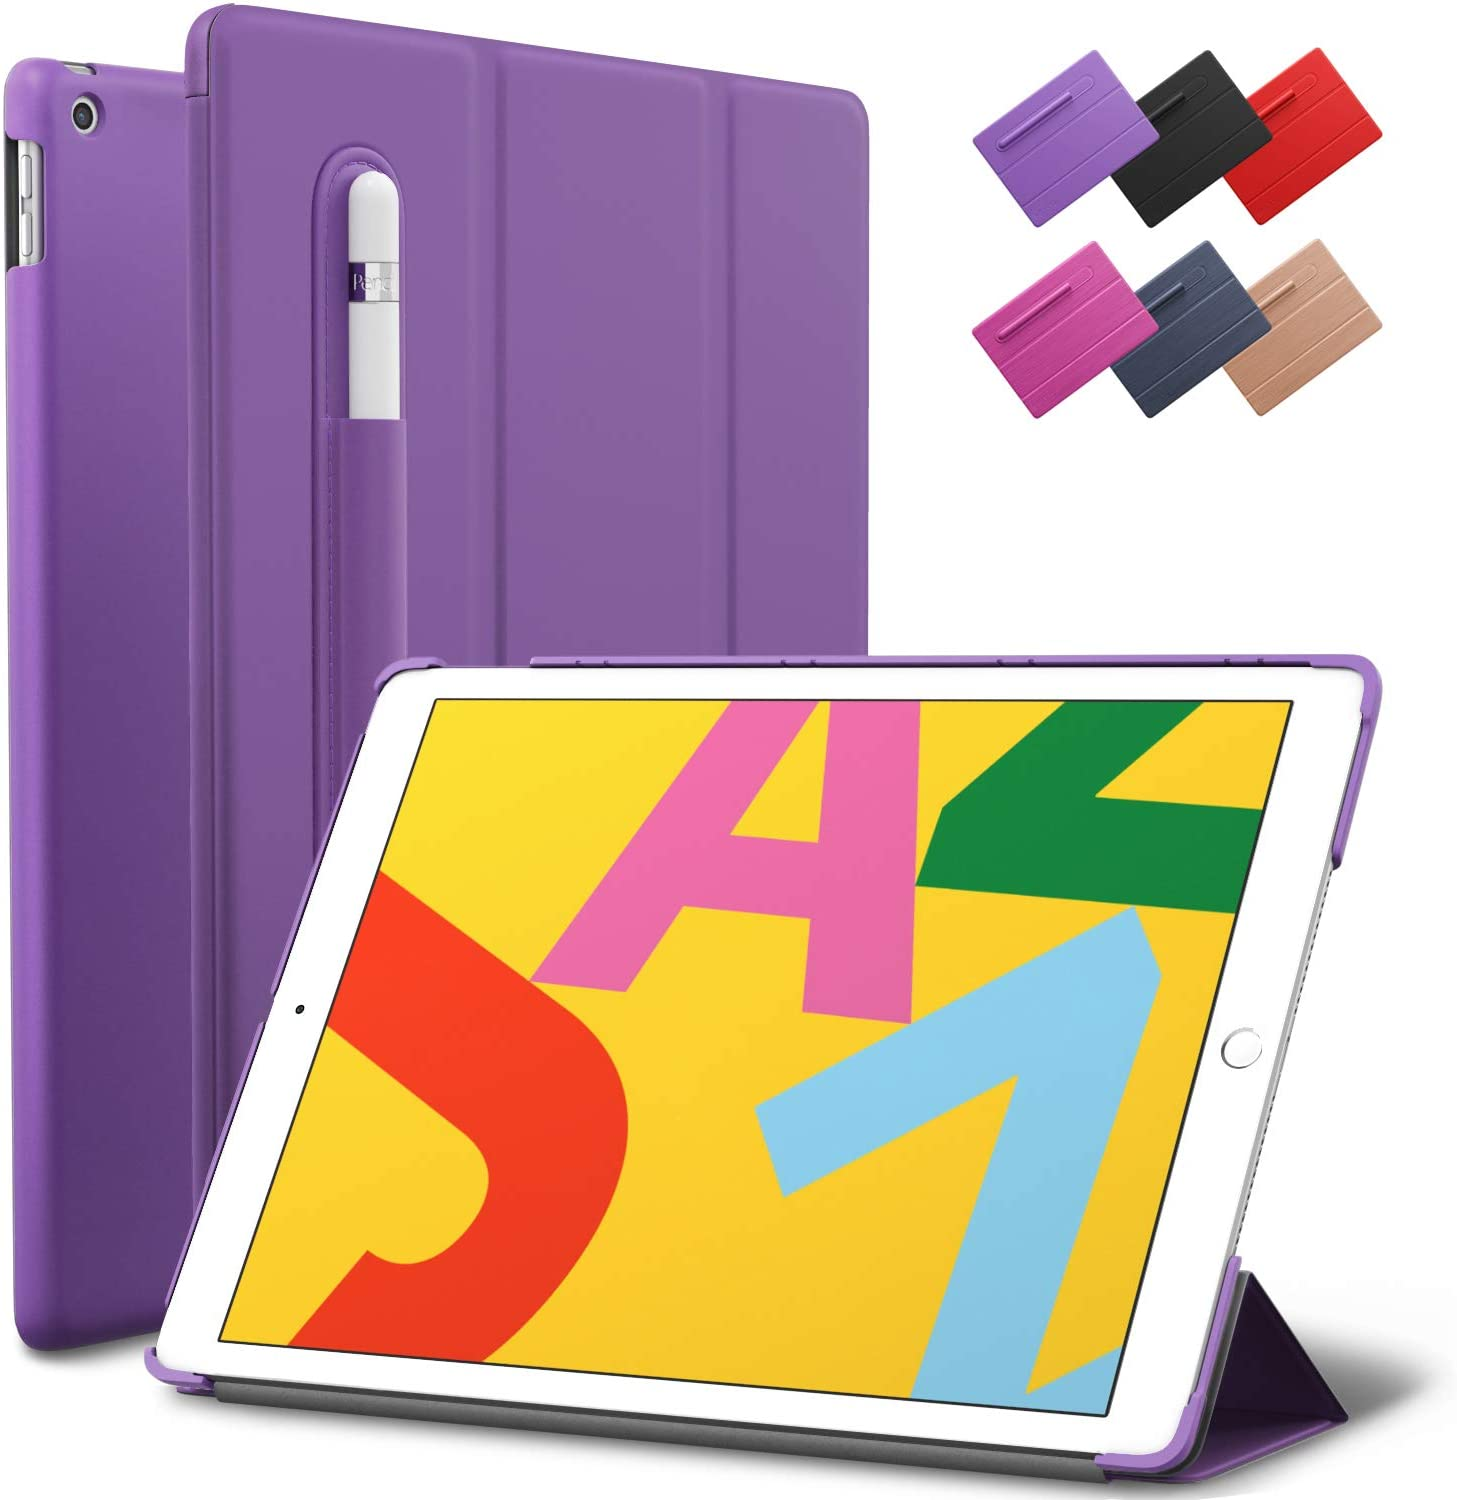 iPad 10.2-inch 2019 Case, ROARTZ Purple Slim-Fit Smart Rubber Folio Case Hard Cover Light-Weight Auto Wake Sleep Pencil Holder for Apple iPad 7th Generation Latest Model A2197 A2198 A2200